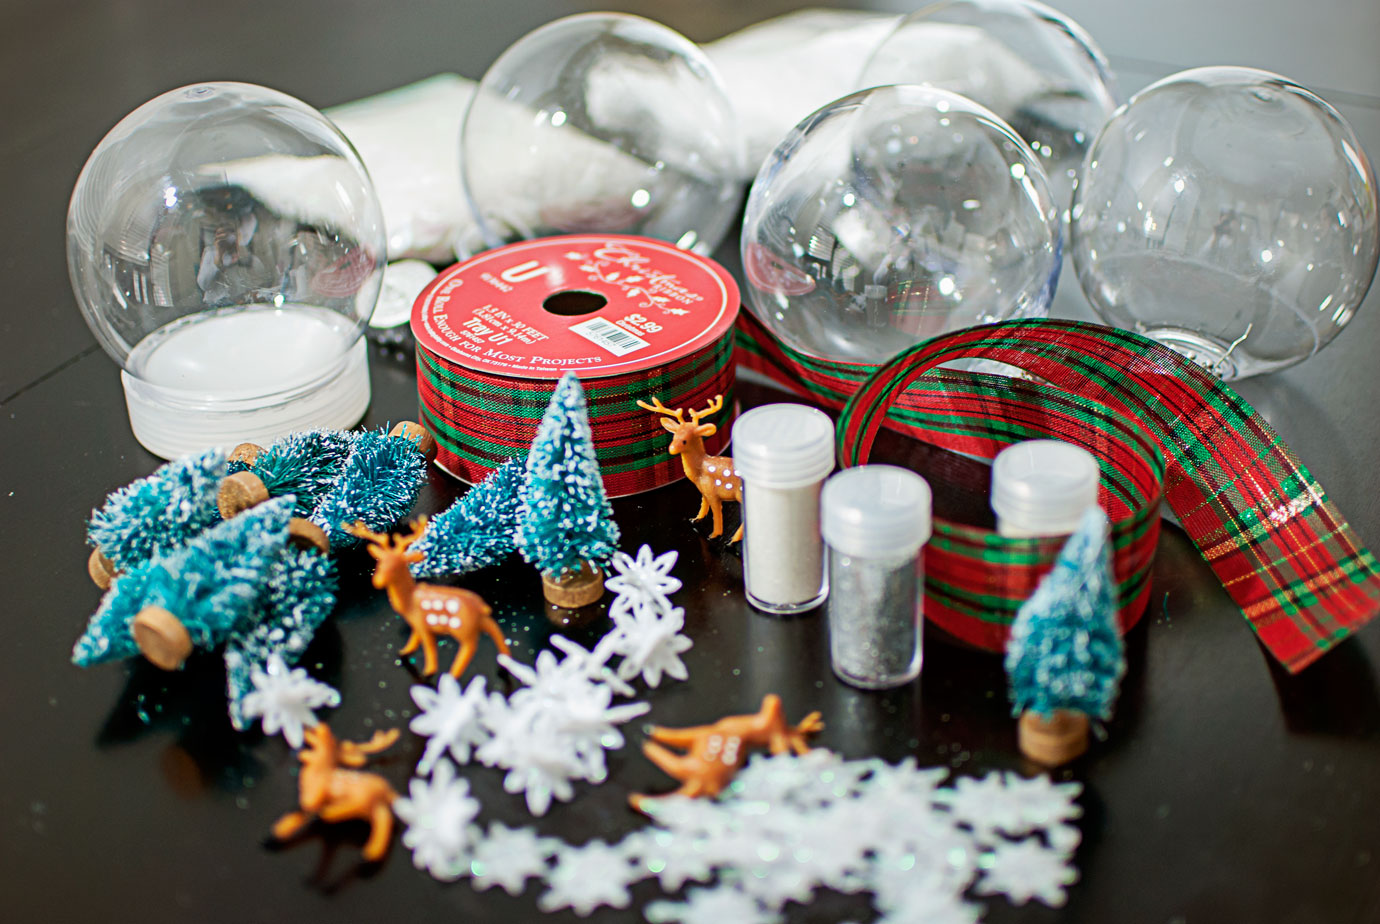 Supplies for a White Christmas Inspired Snow Globe